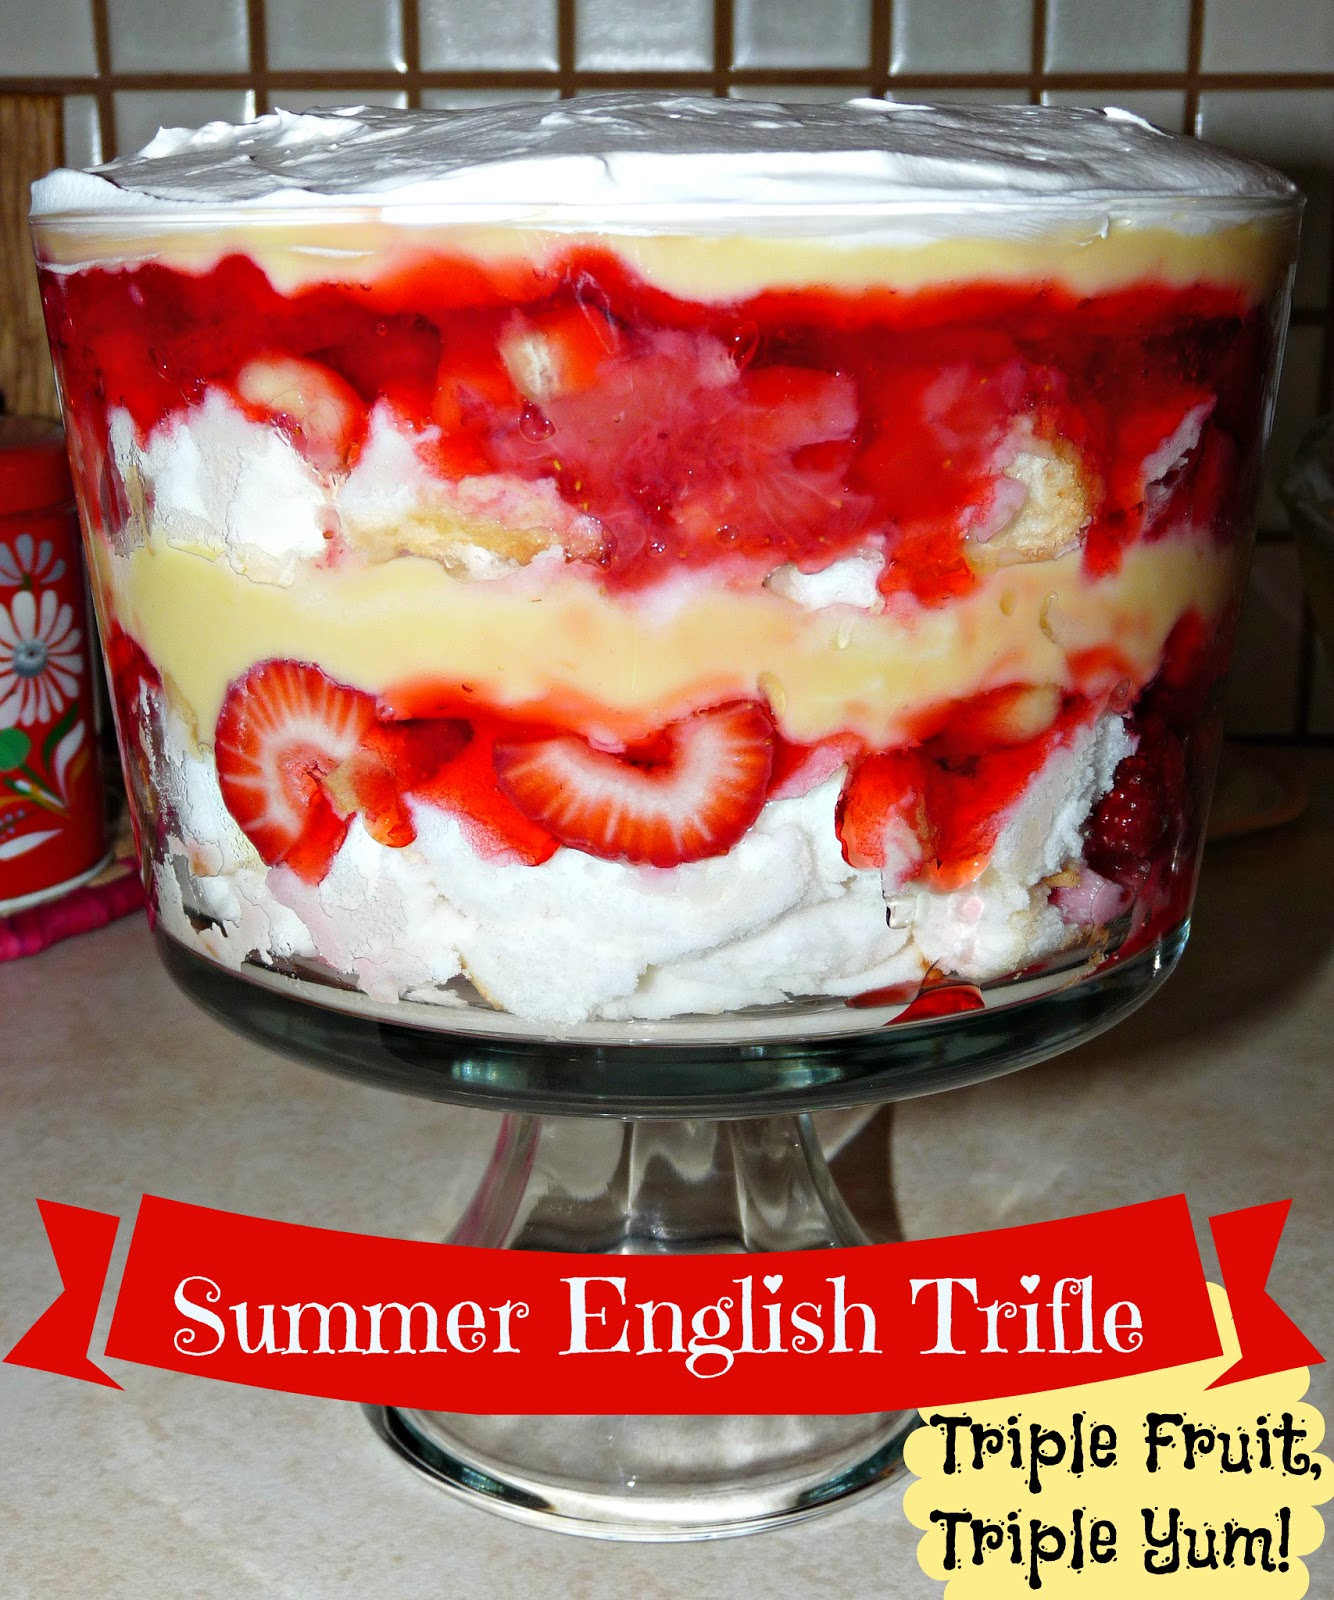 Zoe's Lunchbox: Summer English Trifle & Leftovers For Lunch